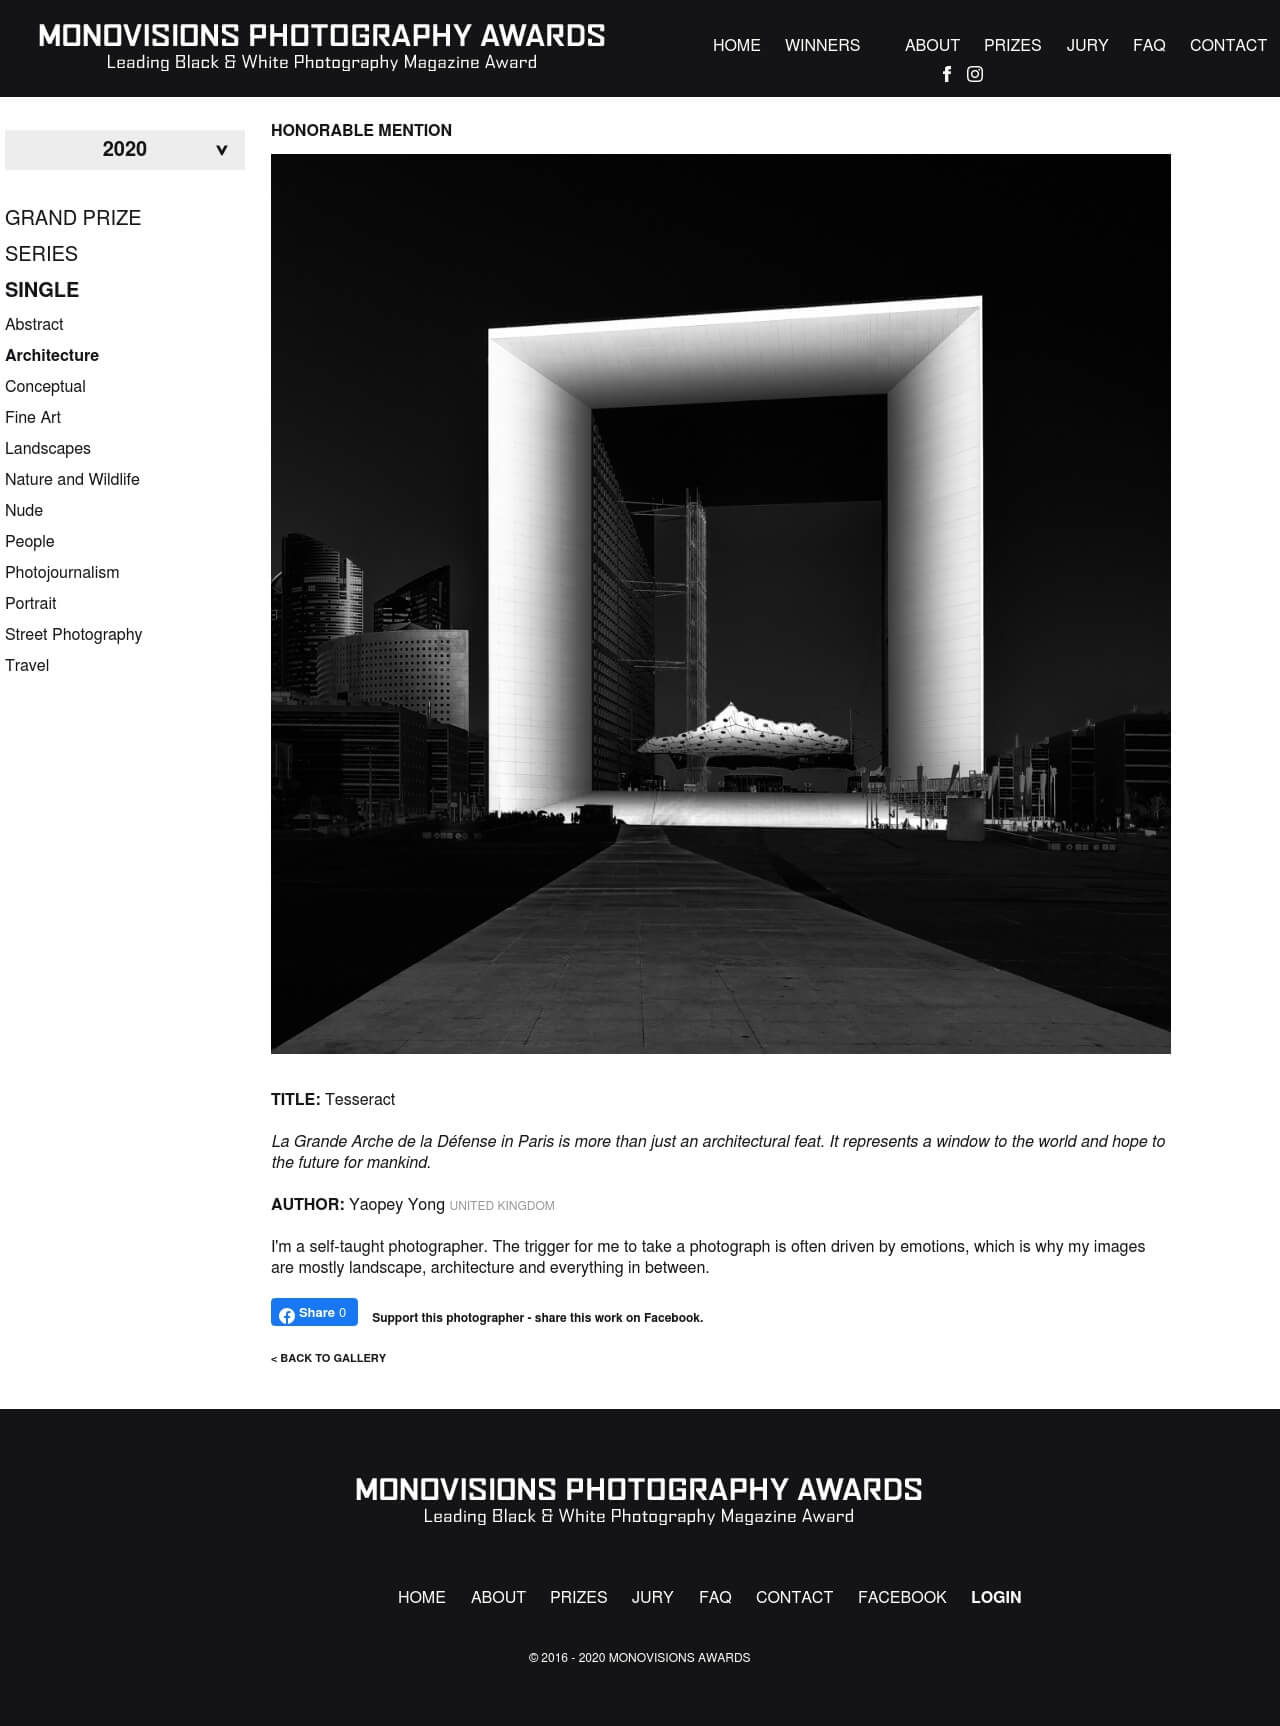 monovision photography award honorable mention